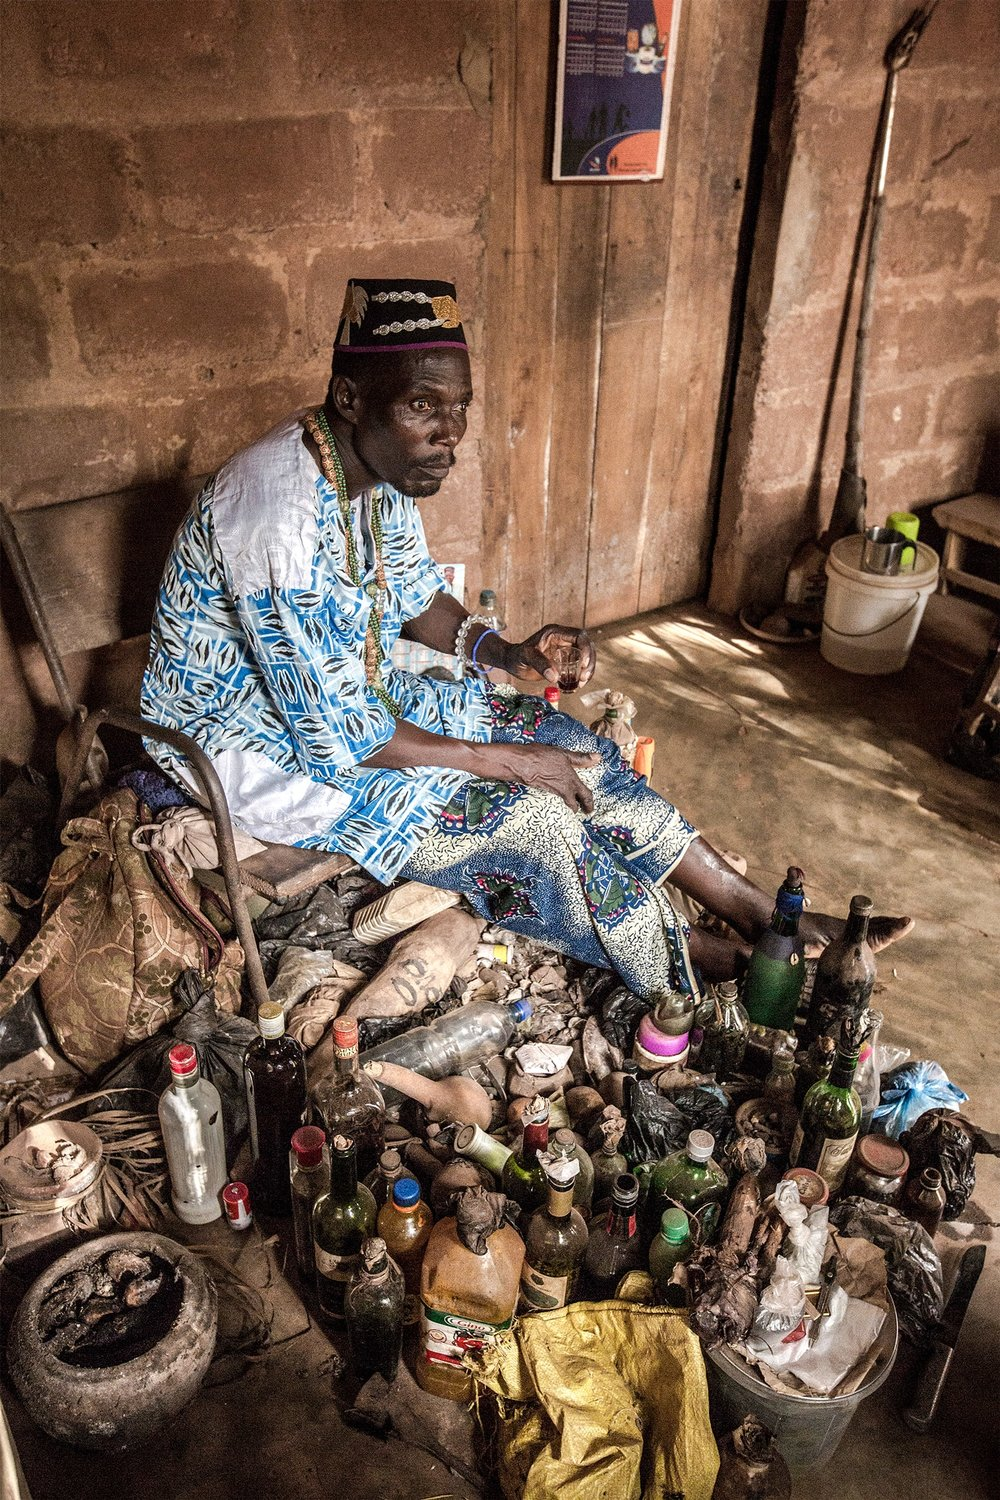 documentary-reportage-photography-african-traditional-religion-fabio-burrelli-13.jpg